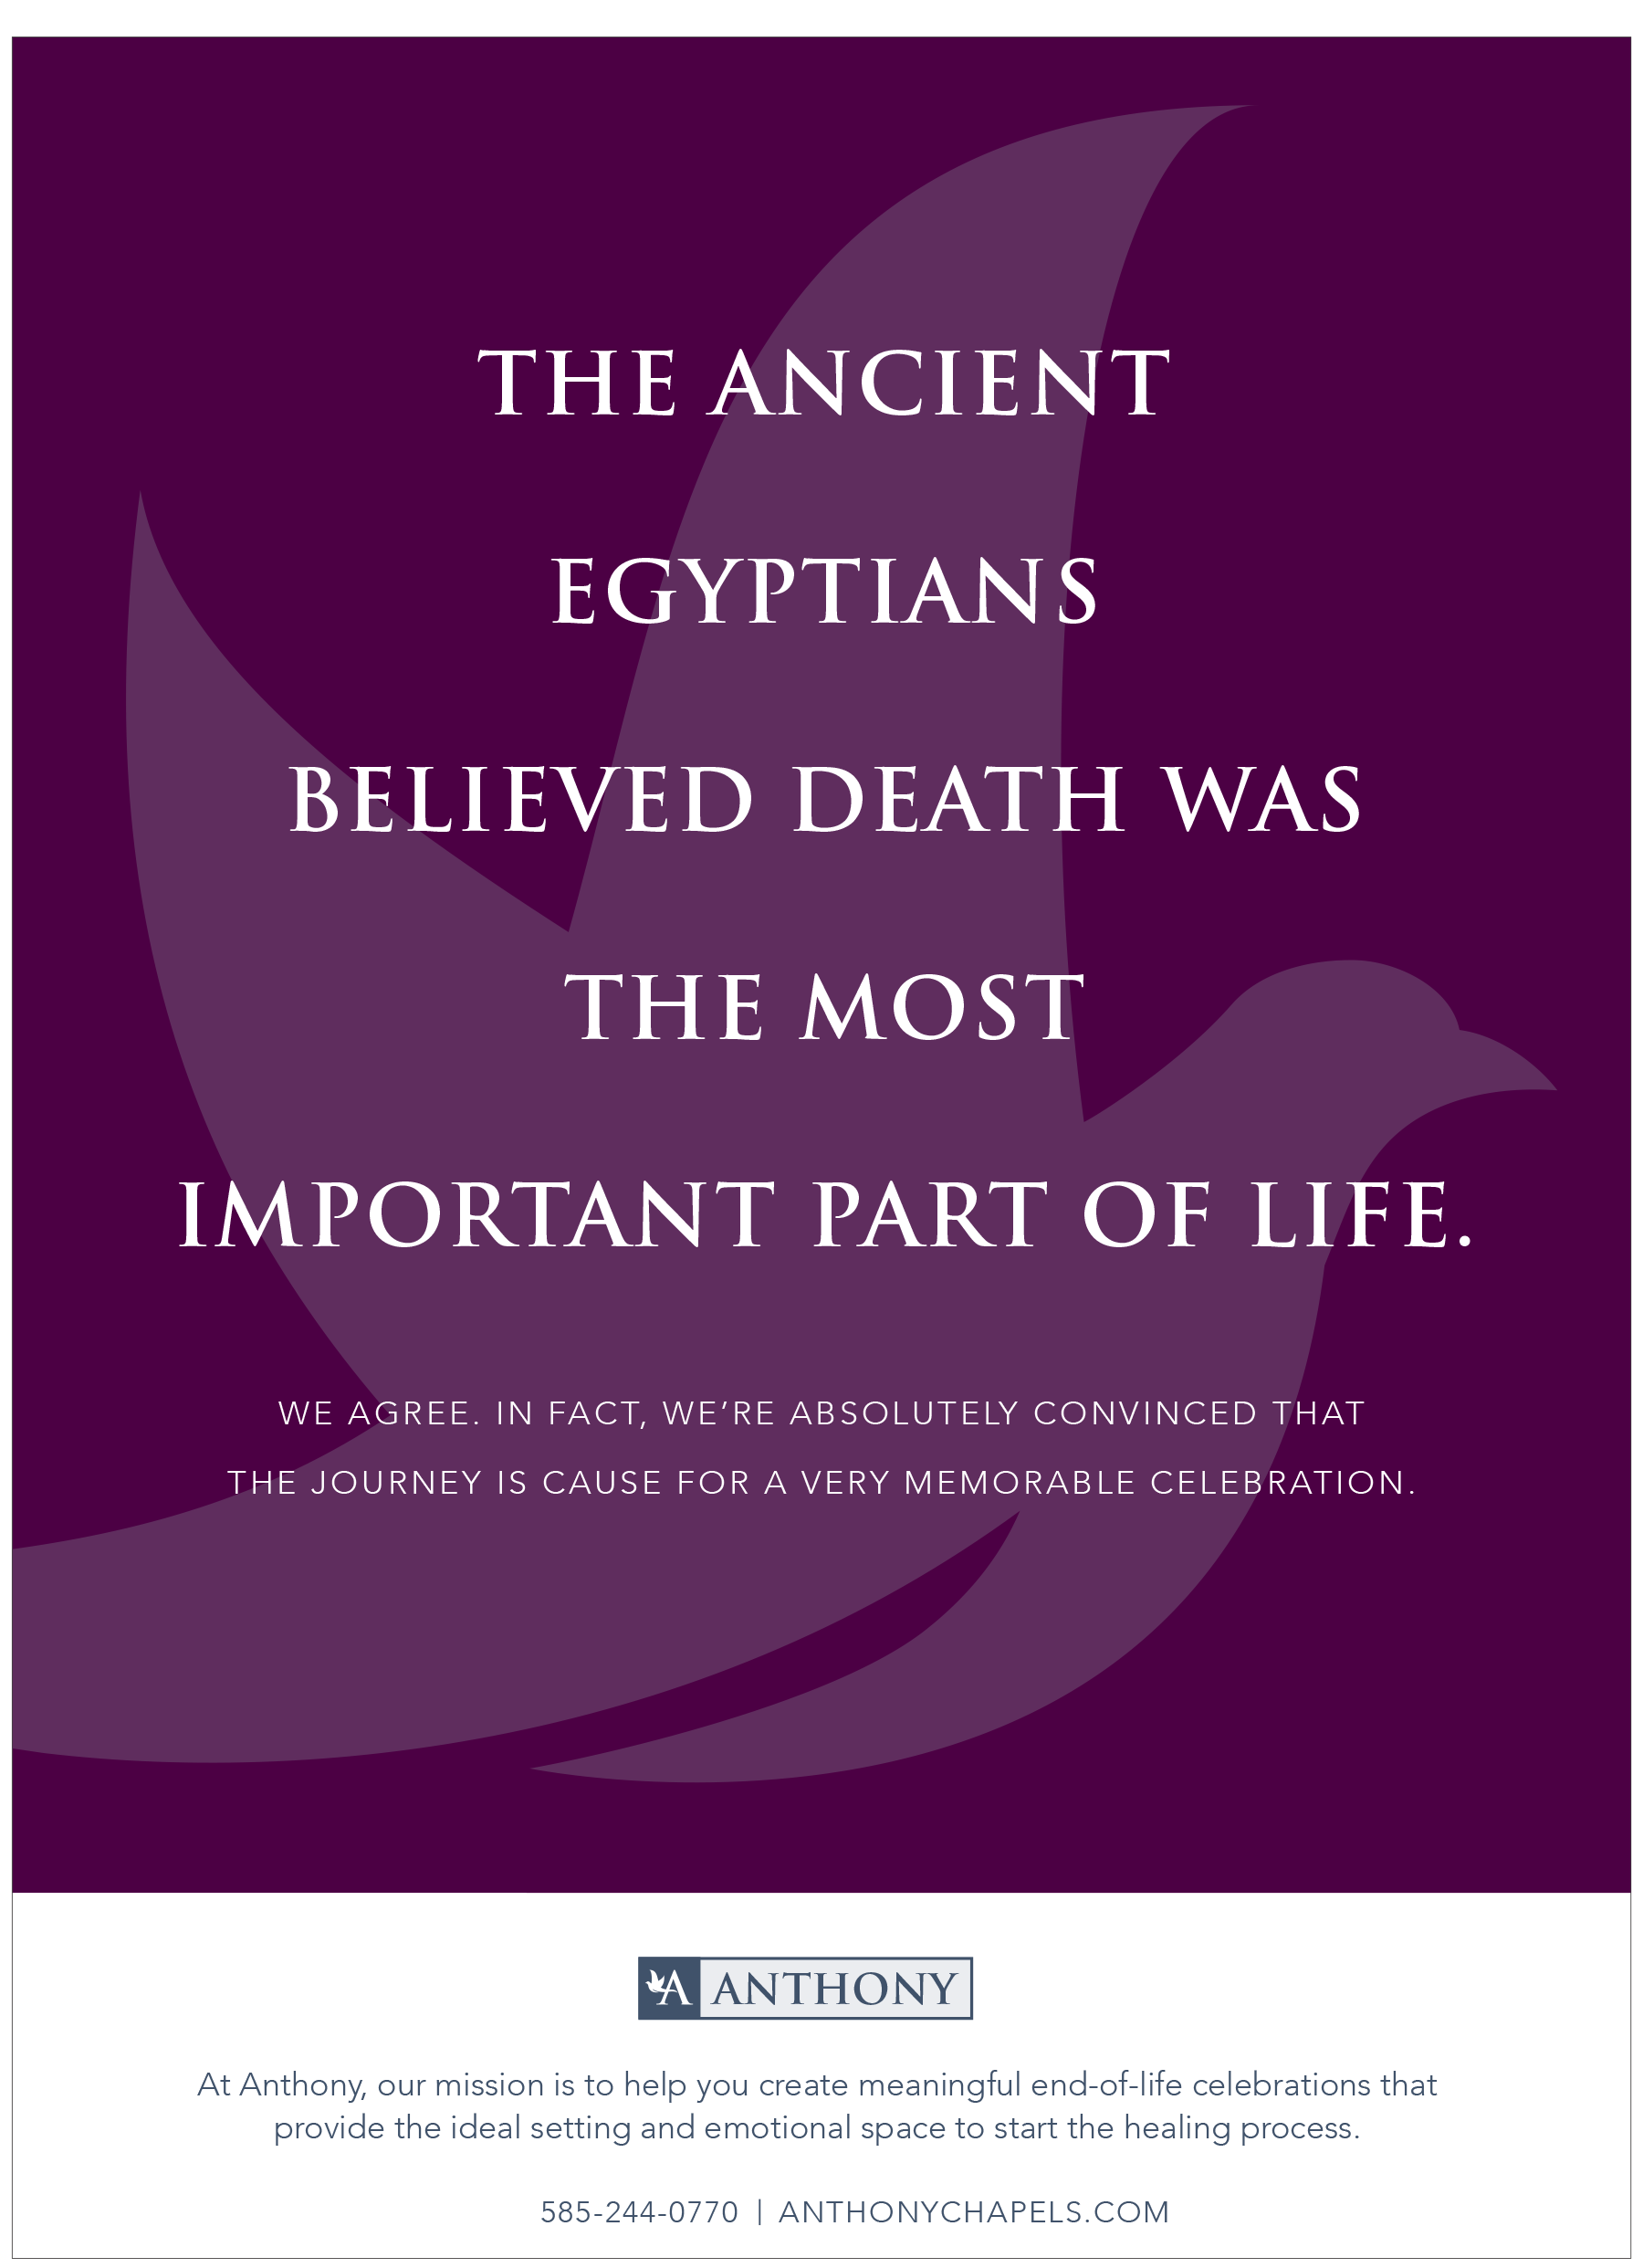 Anthony Print Ad- Egyptians